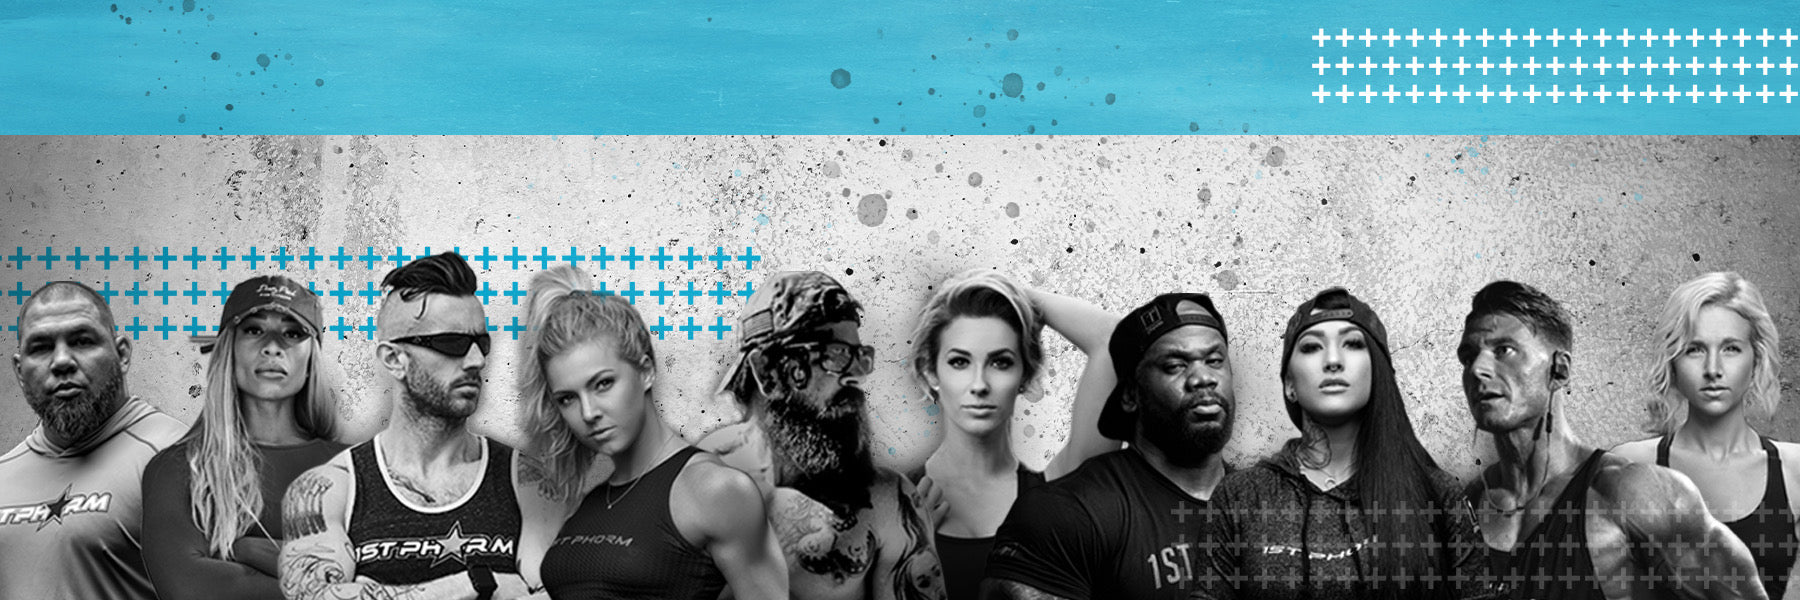 2020 1st Phorm Athlete Search - How to Become a Sponsored Athlete